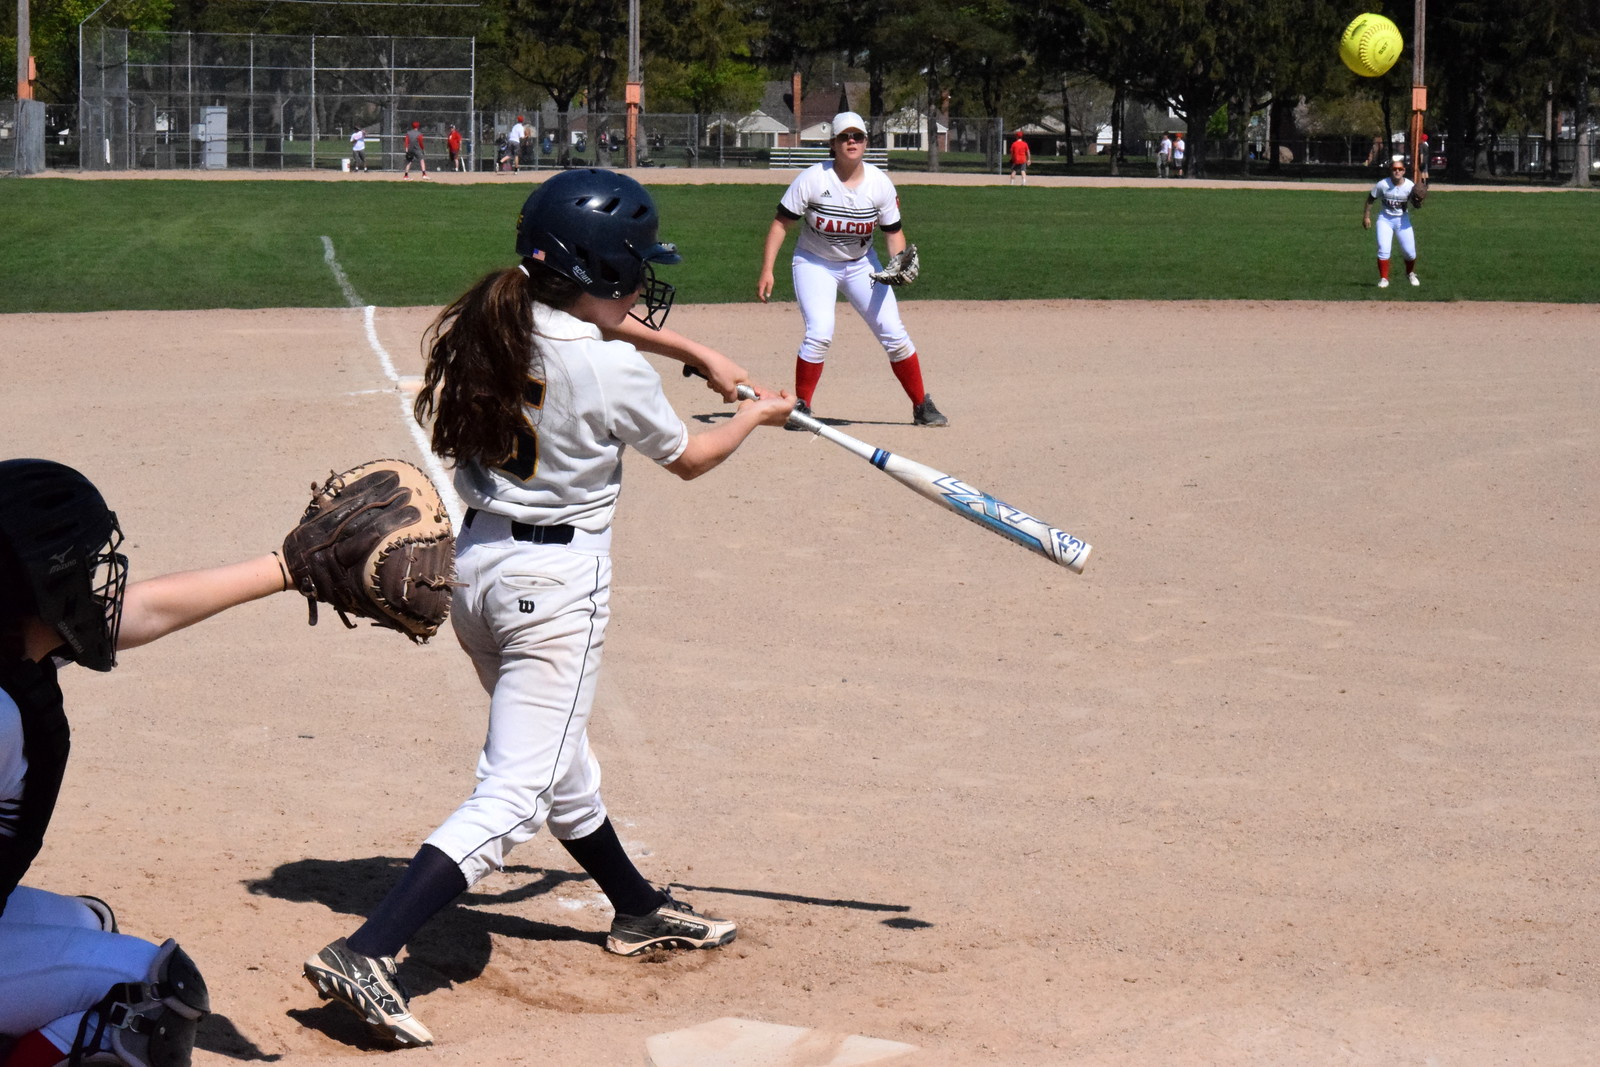 Divine Child welcomed in Allen Park Cabrini on Tuesday afternoon and swept a doubleheader against the Monarchs. The Falcons won game No. 1 by a score of 7-6 and they took the nightcap 8-5. Photo by Alex Muller - For Digital First Media